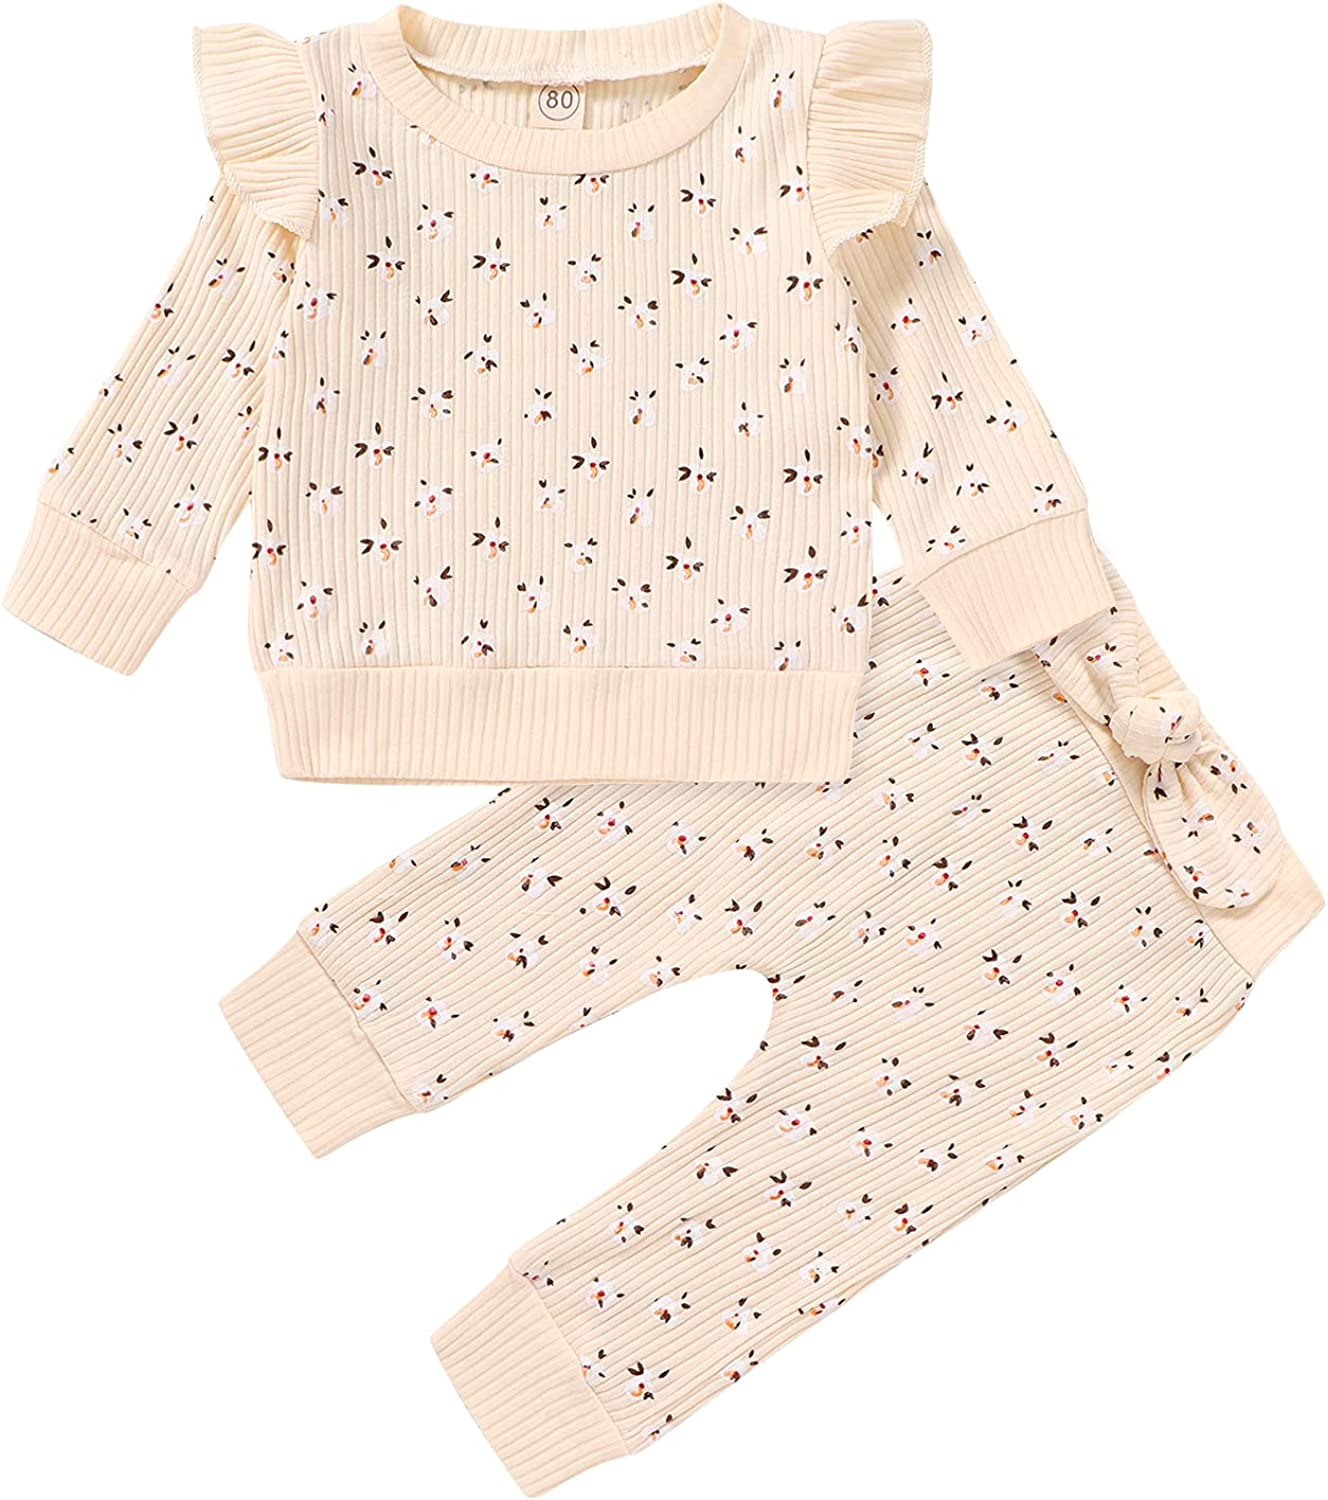 Toddler Girl Clothes Floral Long Sleeve Pullover Tops + Bow Long Pant 2PCS Baby Girls Outfit Set 6M-4Y